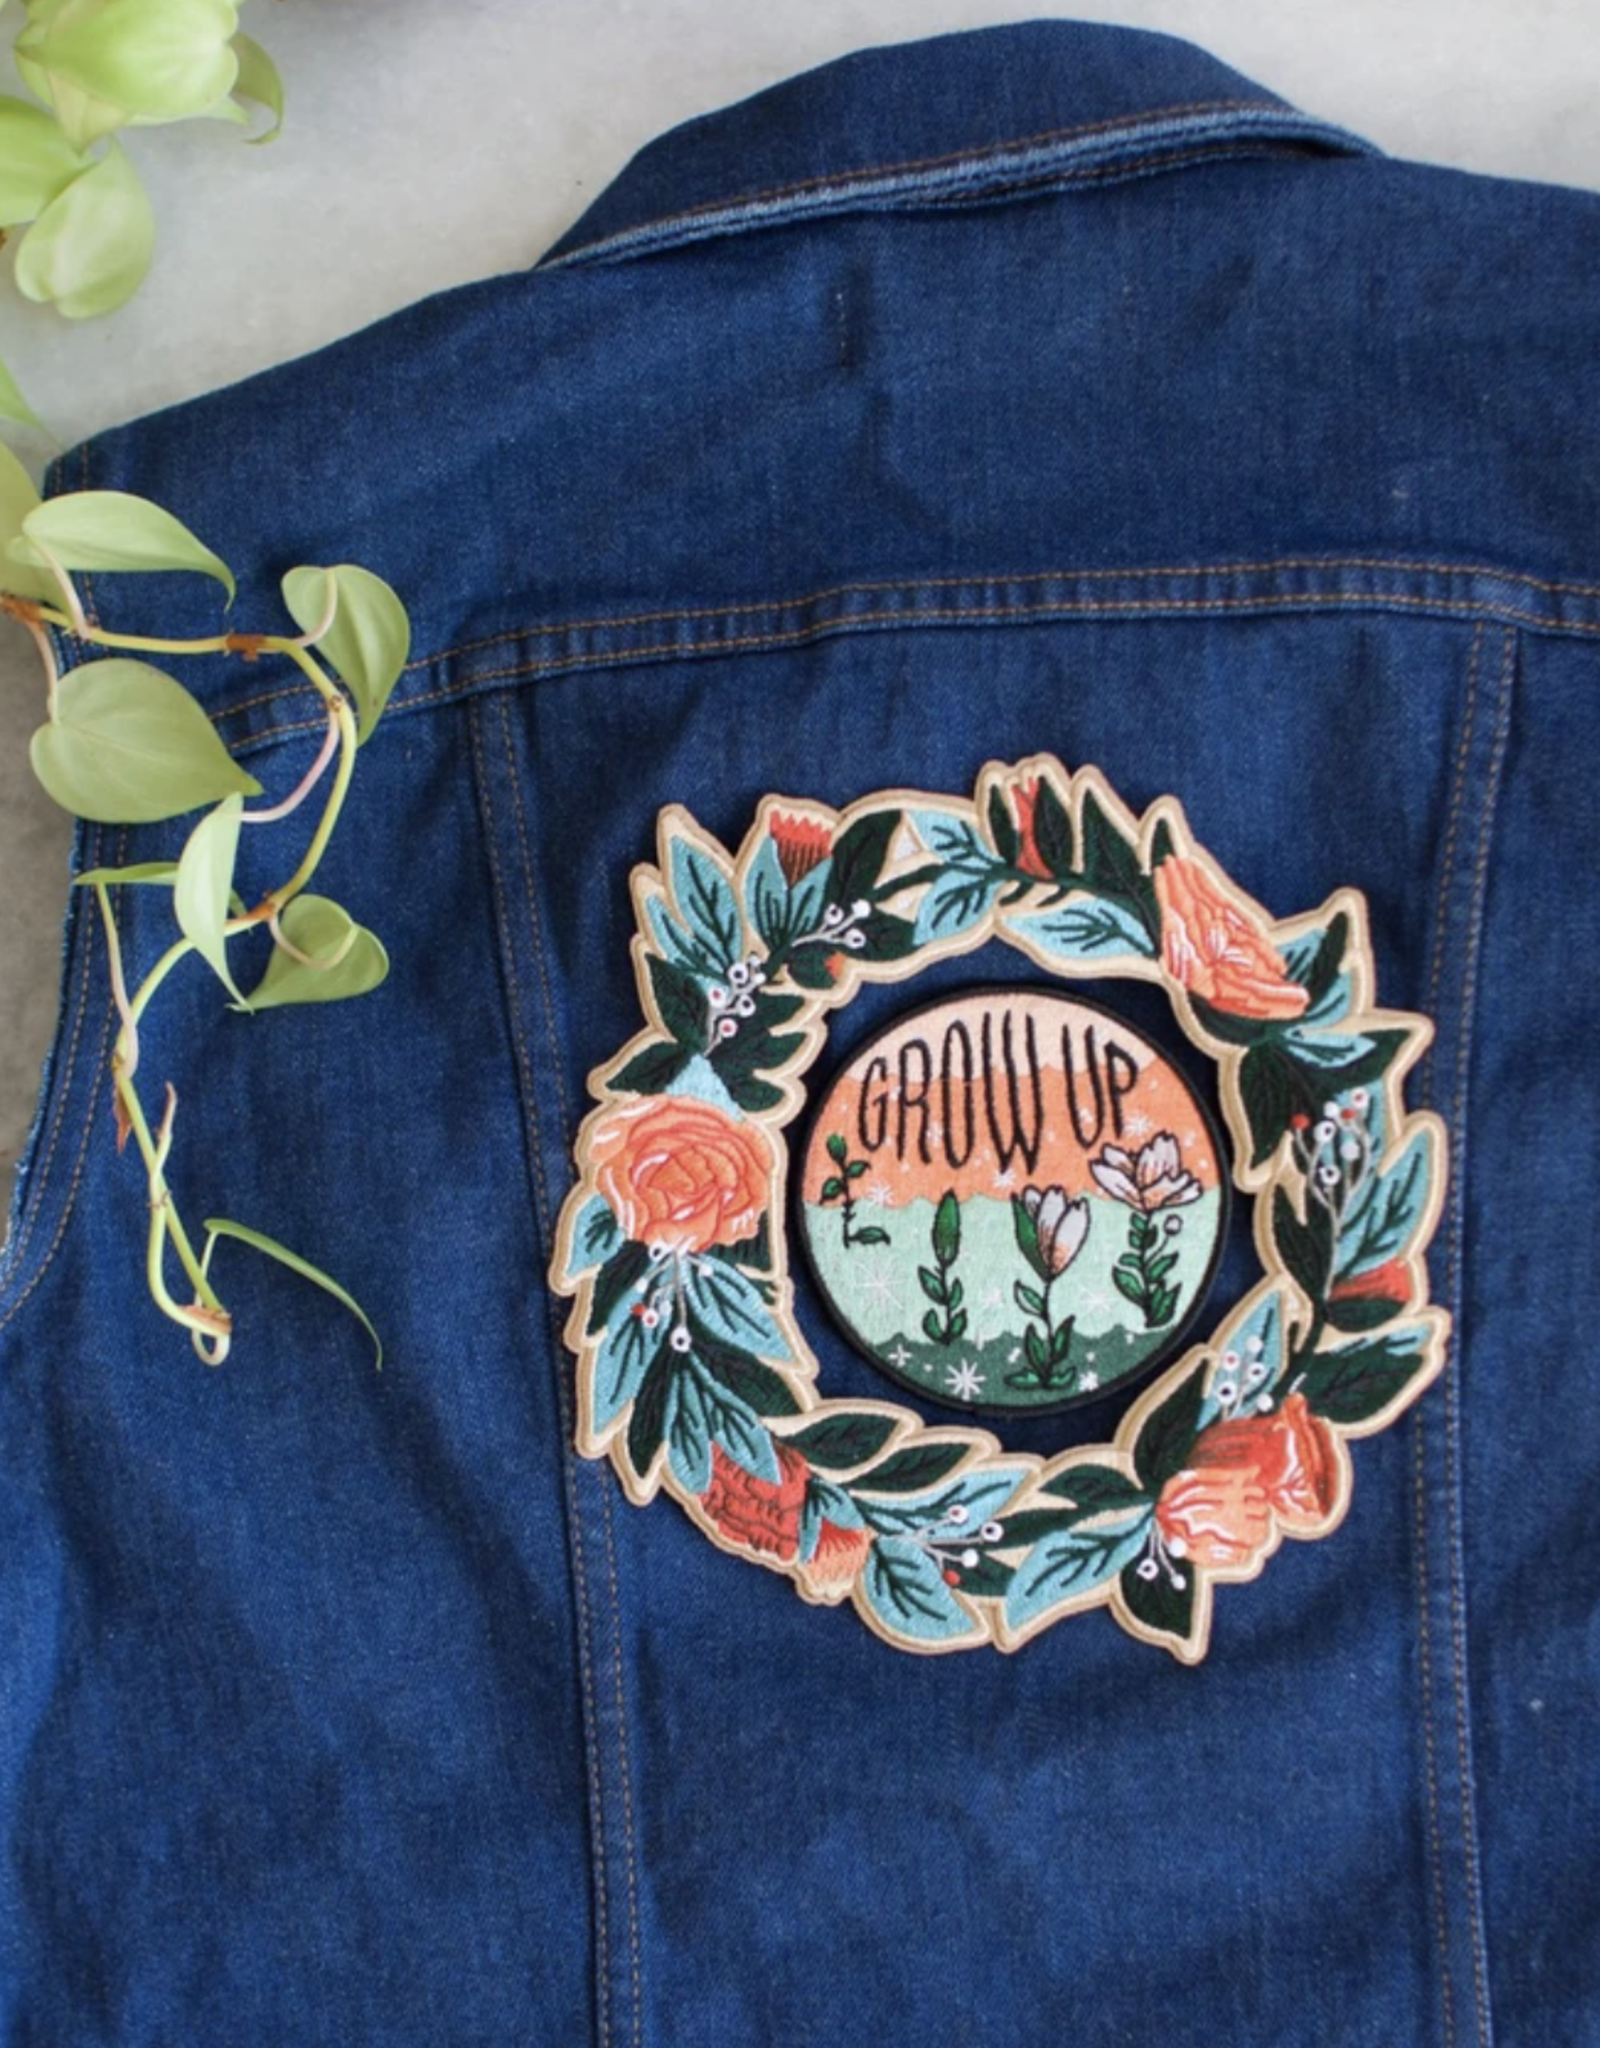 Stay Home Club Wreath Iron-On Back Patch by Stay Home Club